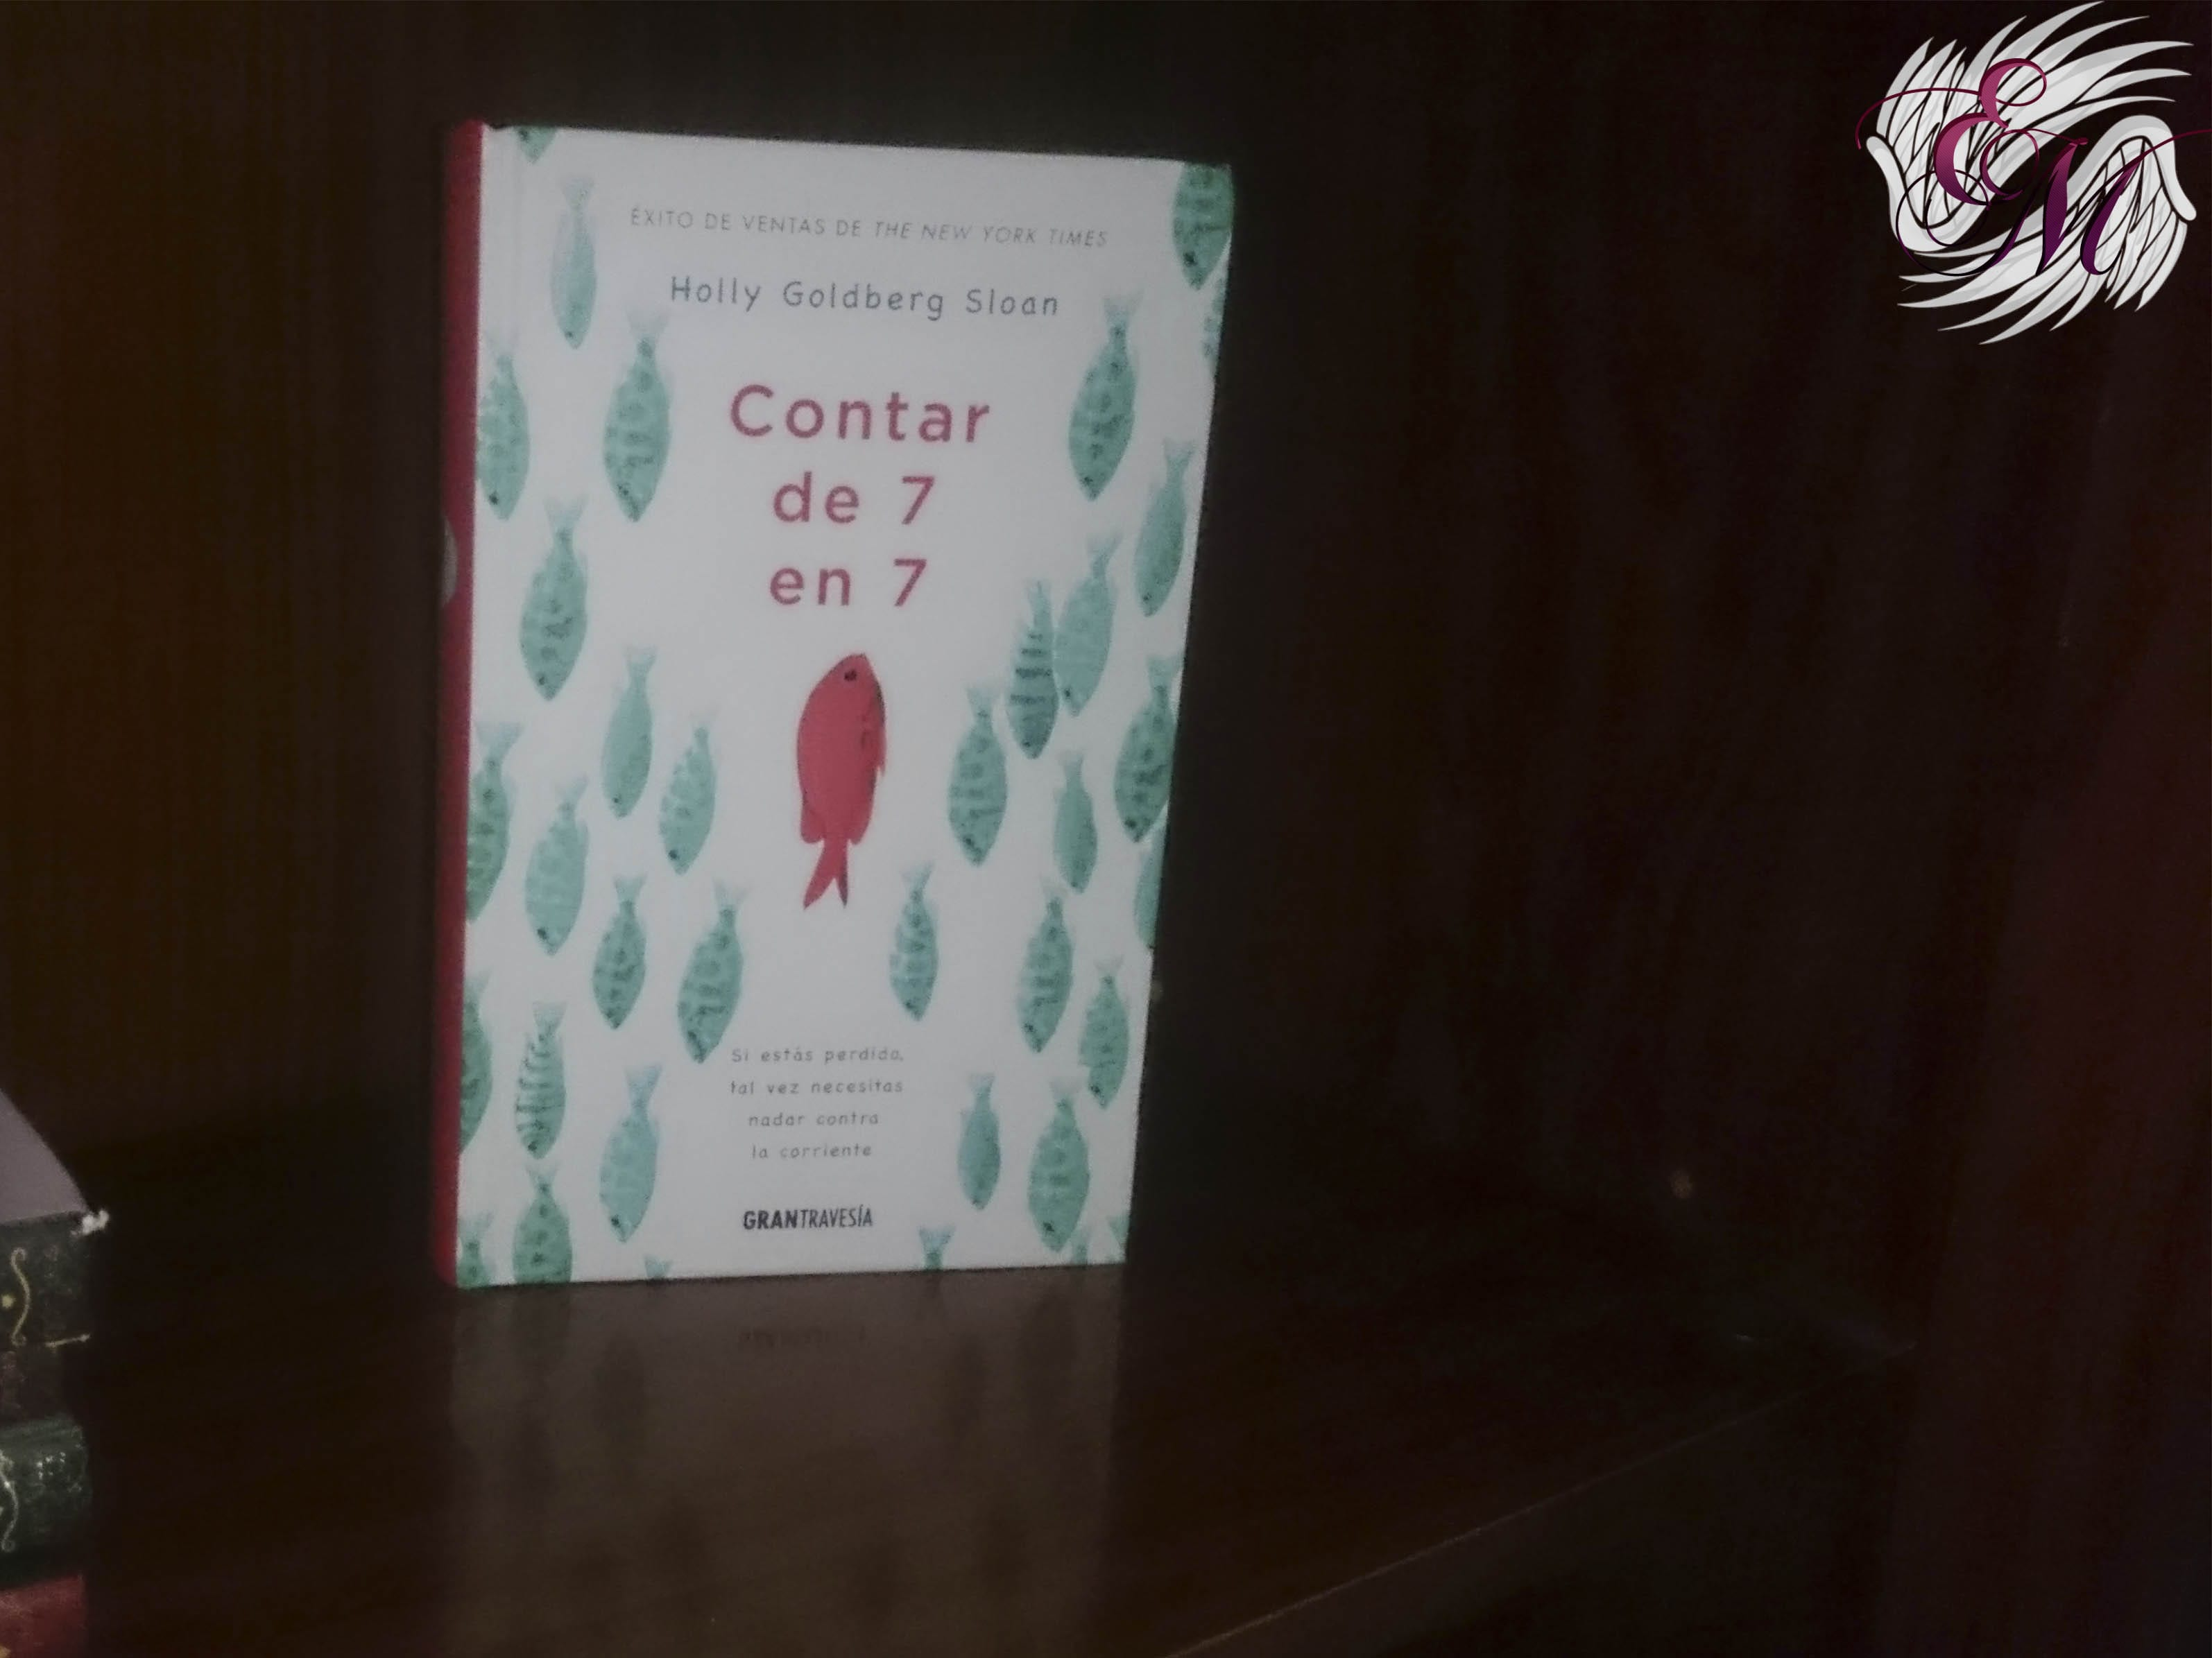 Contar de 7 en 7, de Holly Goldberg Sloan - Reseña